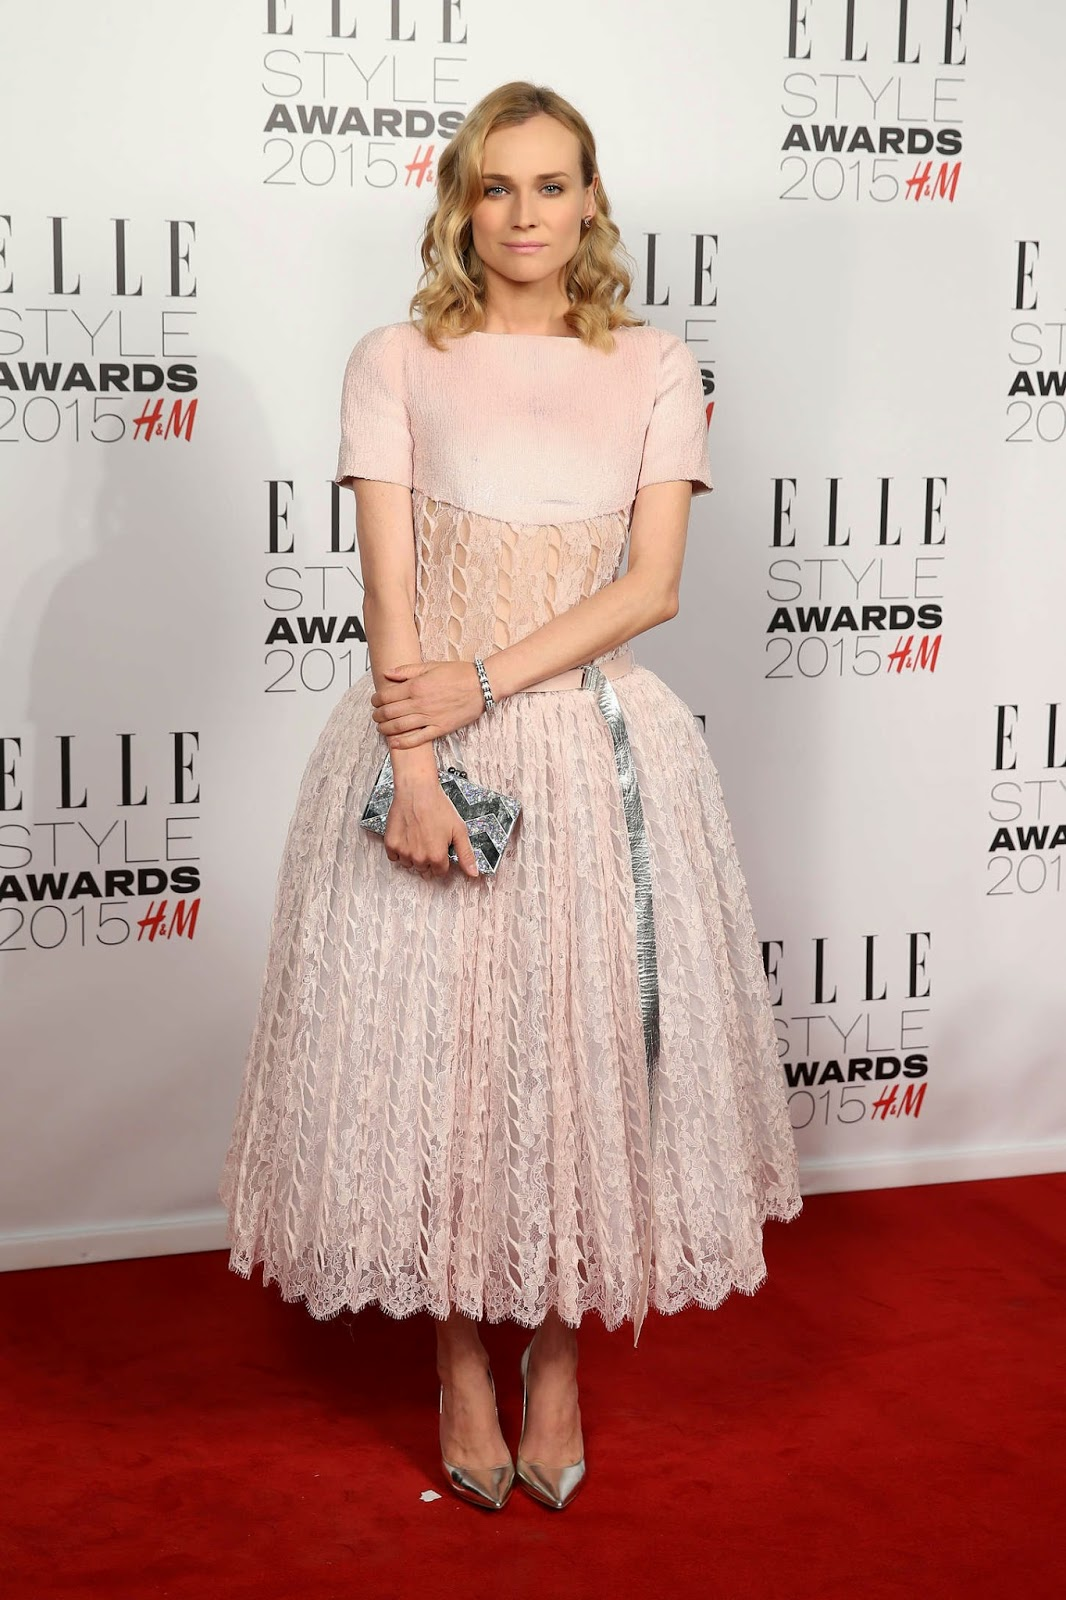 Diane Kruger flaunts Chanel at the 2015 Elle Style Awards in London